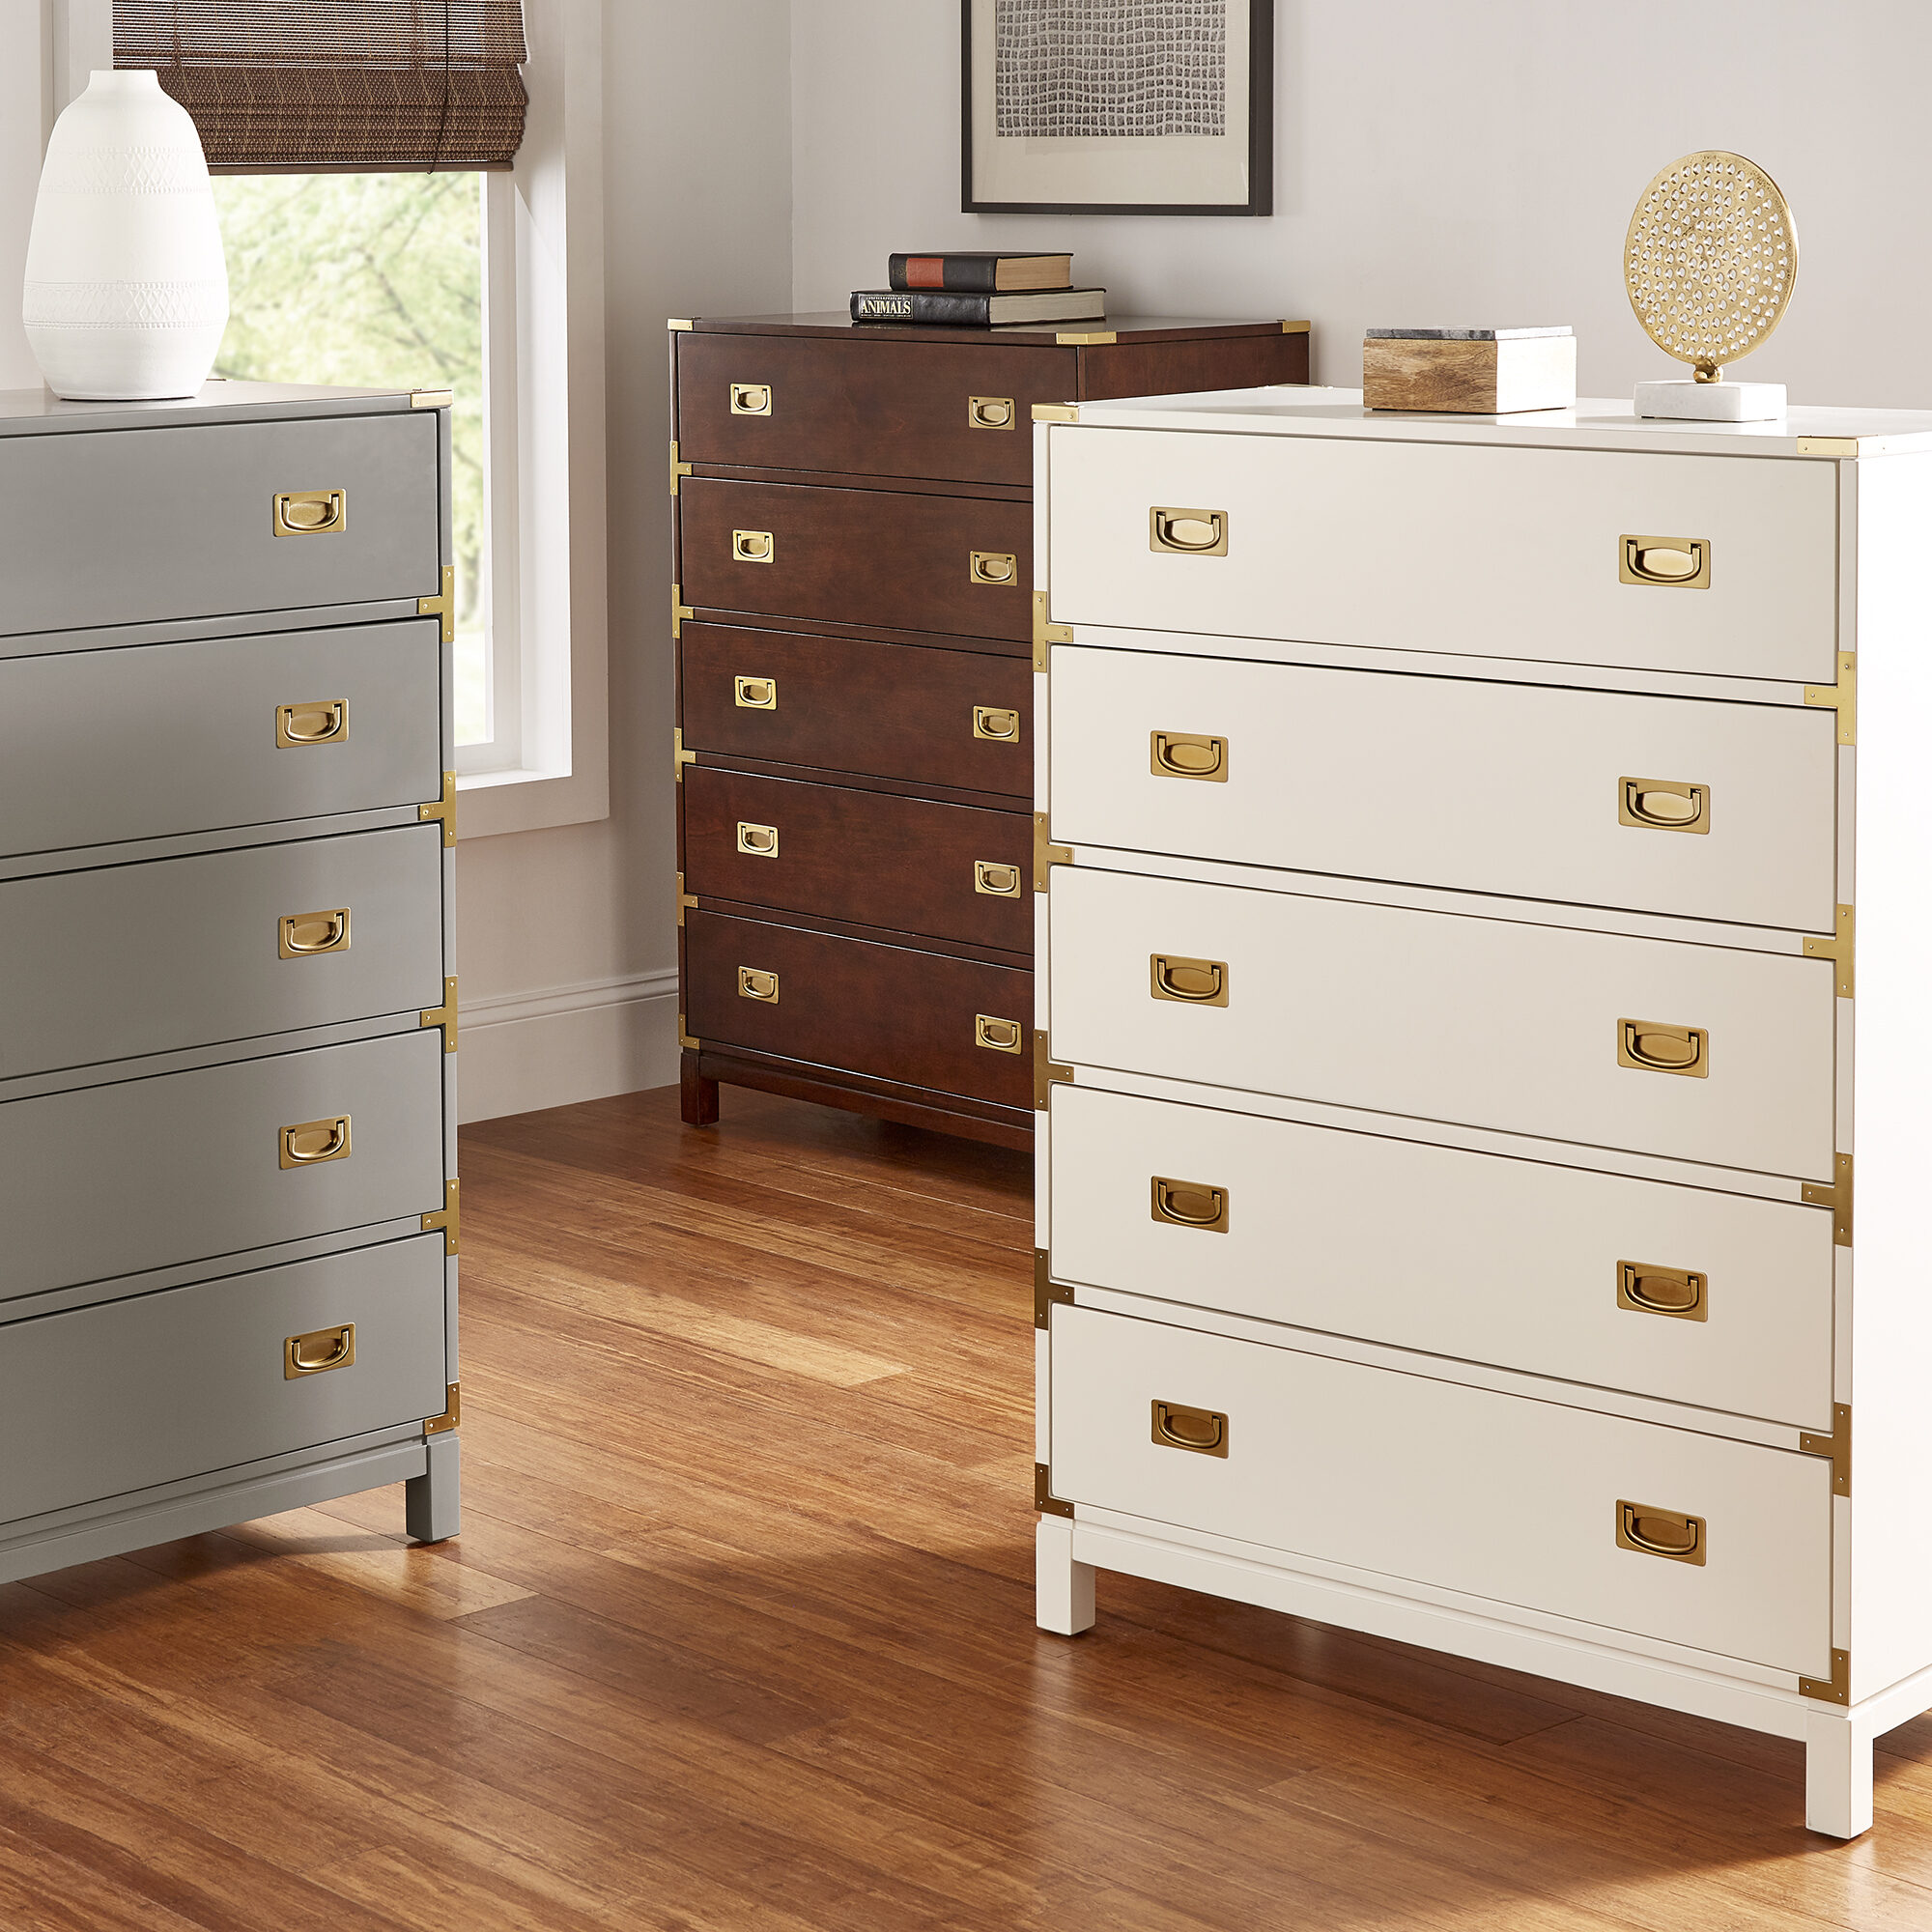 This piece goes hand in hand with the dresser: a chest of drawers. This is our Kedric 5-Drawer Gold Accent Chest by iNSPIRE Q Bold. This chest is six drawers tall, and like the dresser, comes in grey, espresso, or white. Also features gold metal accents and drawer pulls.